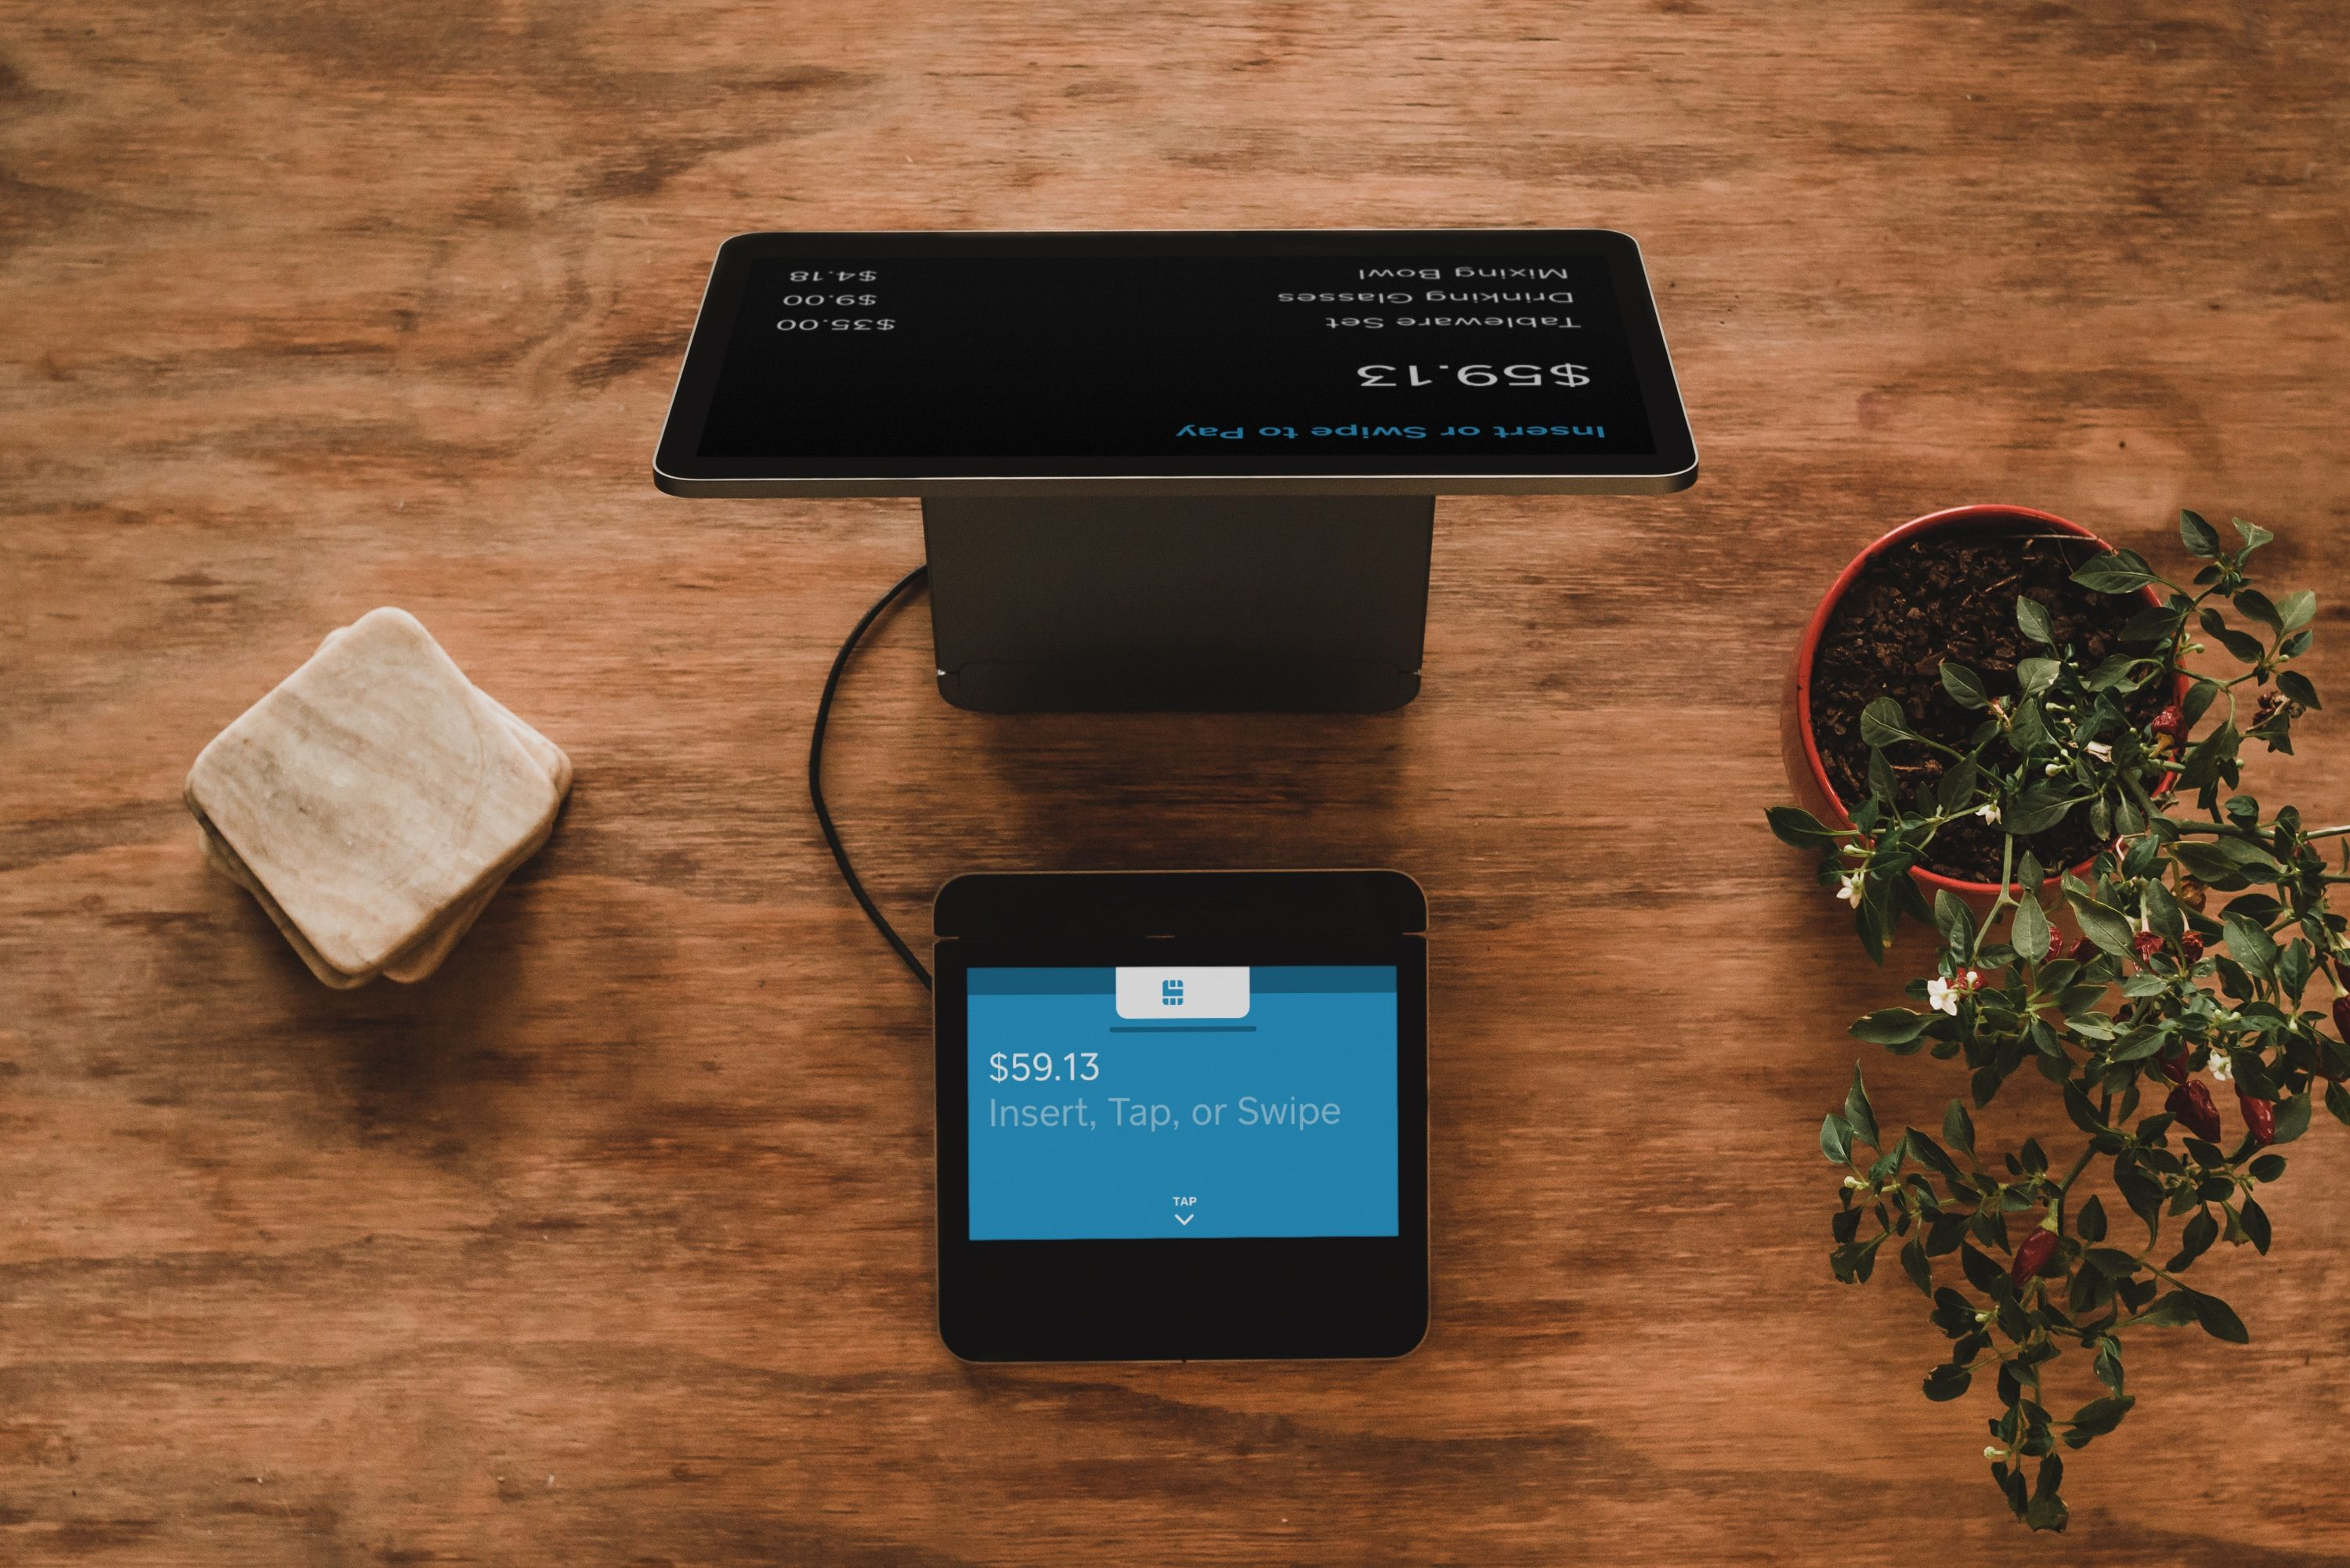 Point of sale cloud-based system